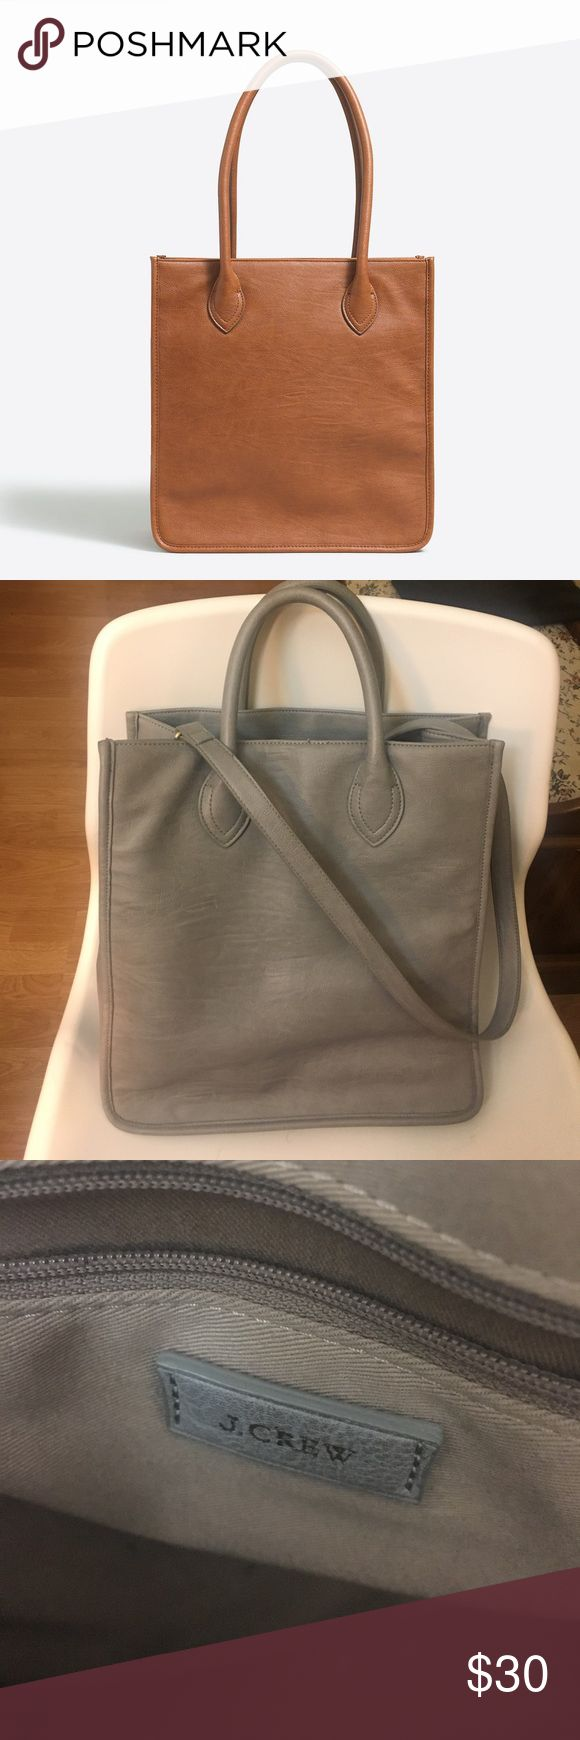 J CREW || VEGAN LEATHER TOTE BAG (GREY) Used but in great condition J. Crew Bags Totes